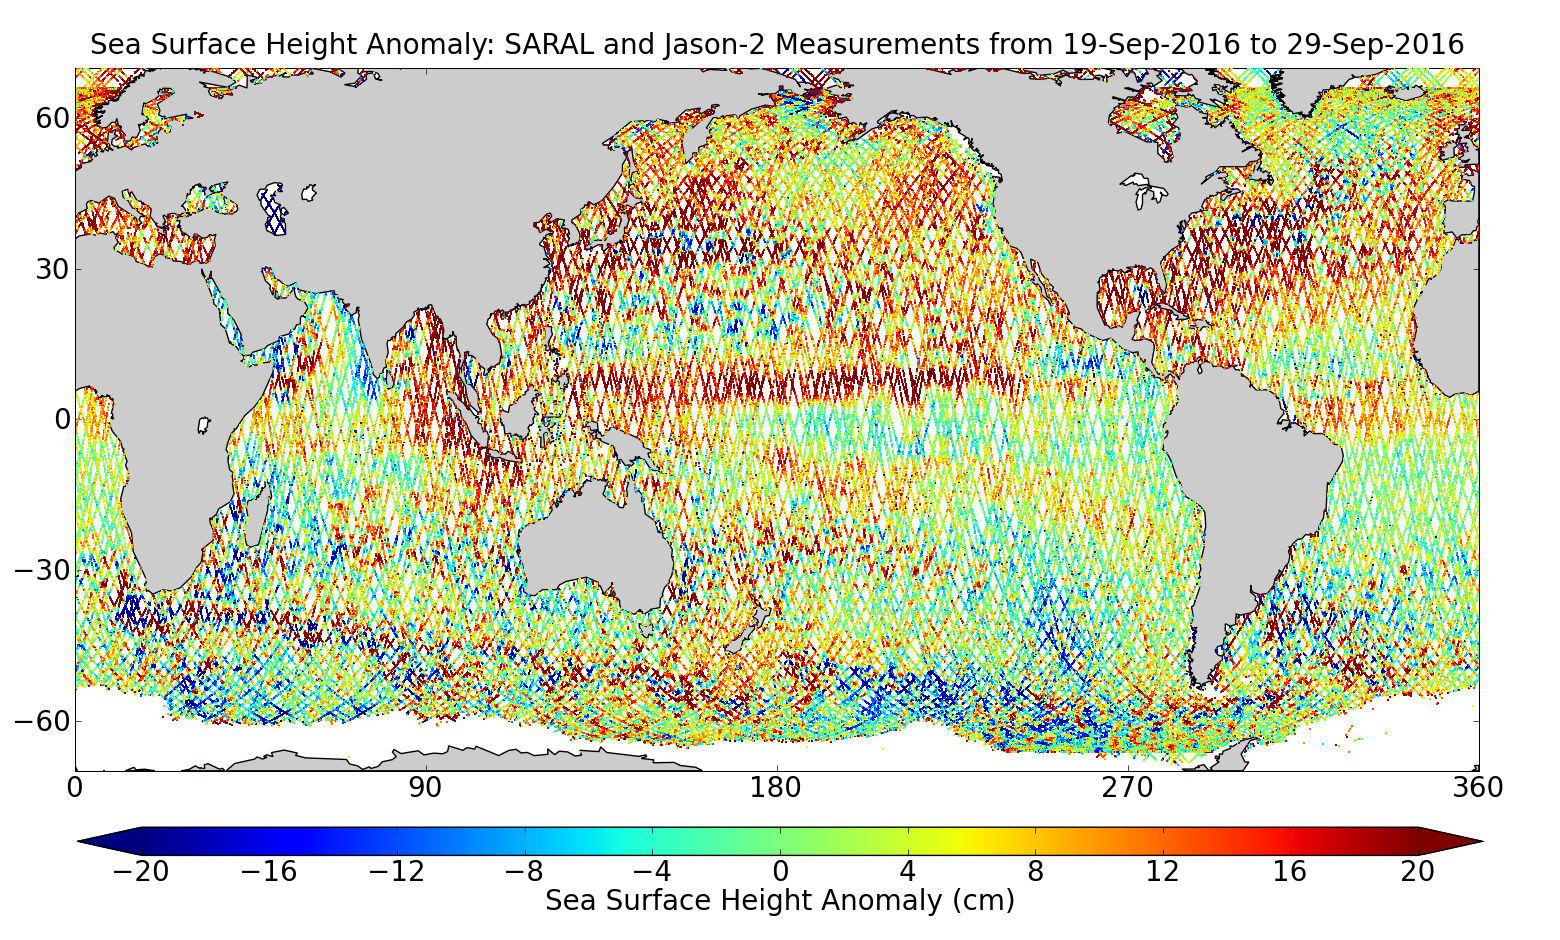 Sea Surface Height Anomaly: SARAL and Jason-2 Measurements from 19-Sep-2016 to 29-Sep-2016